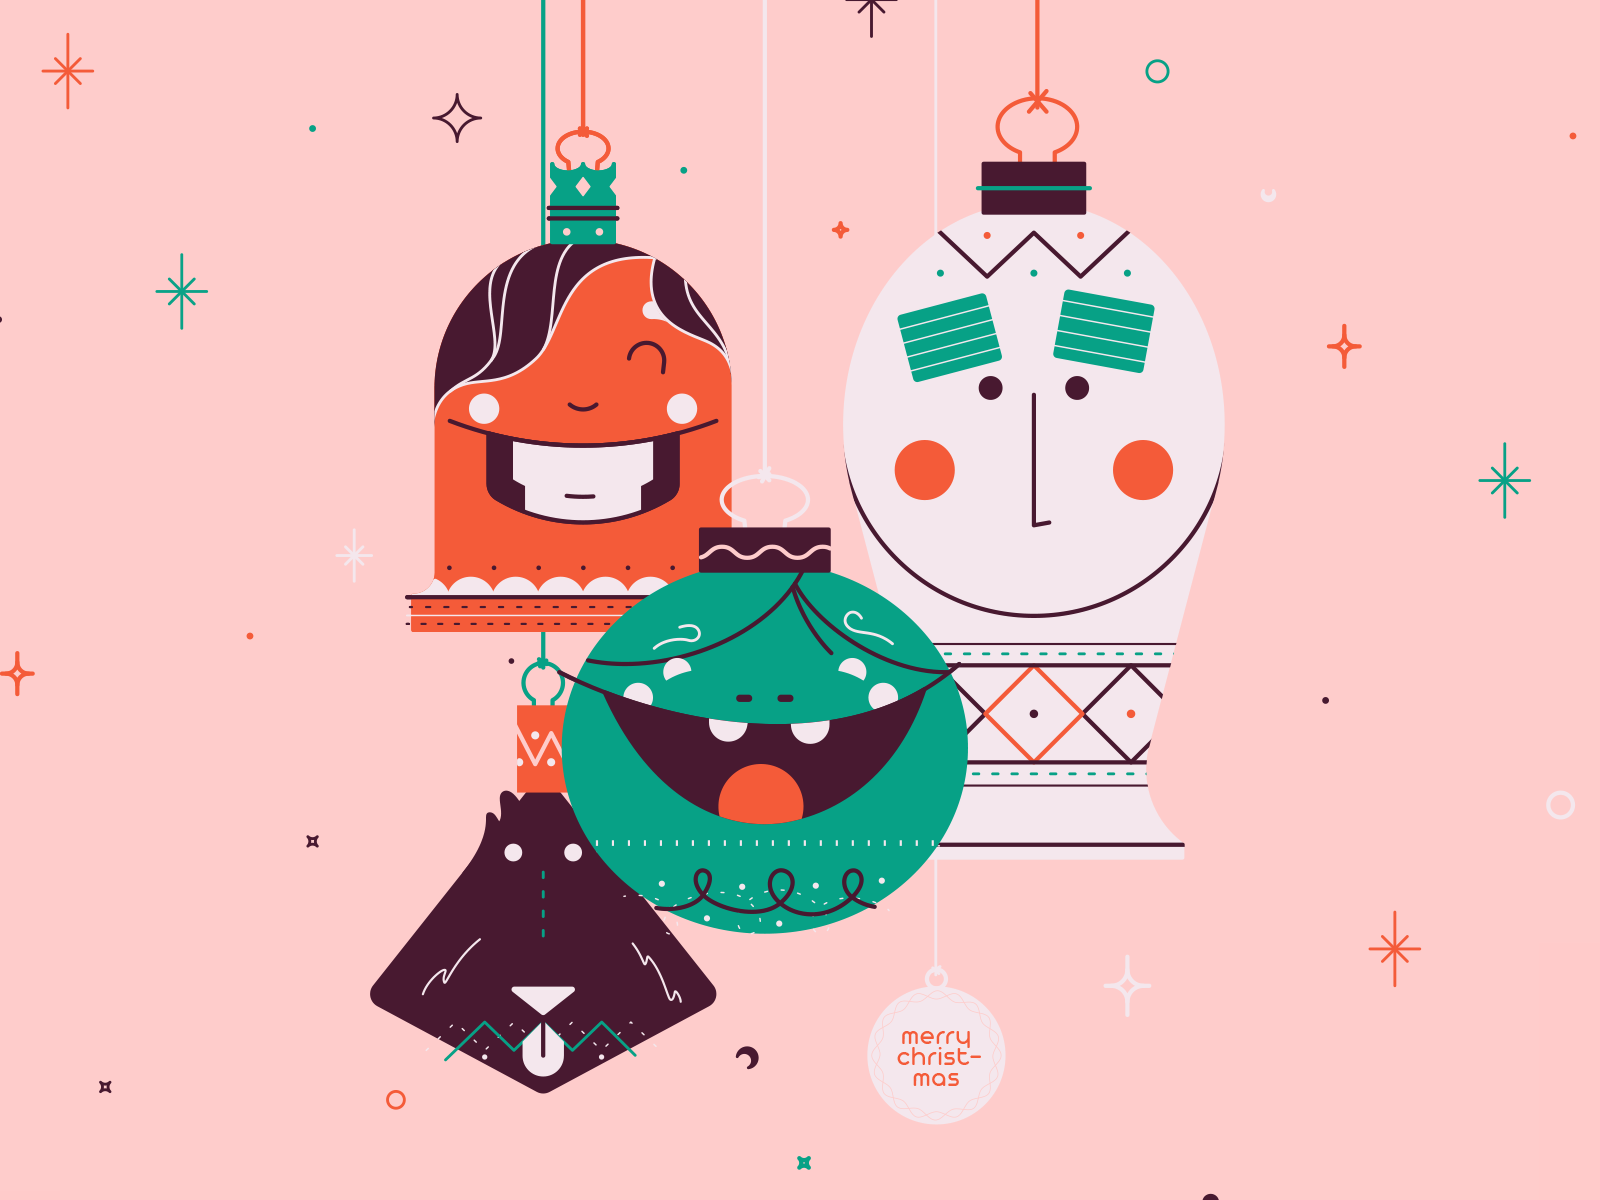 Chris fernandez christmas card dribbble